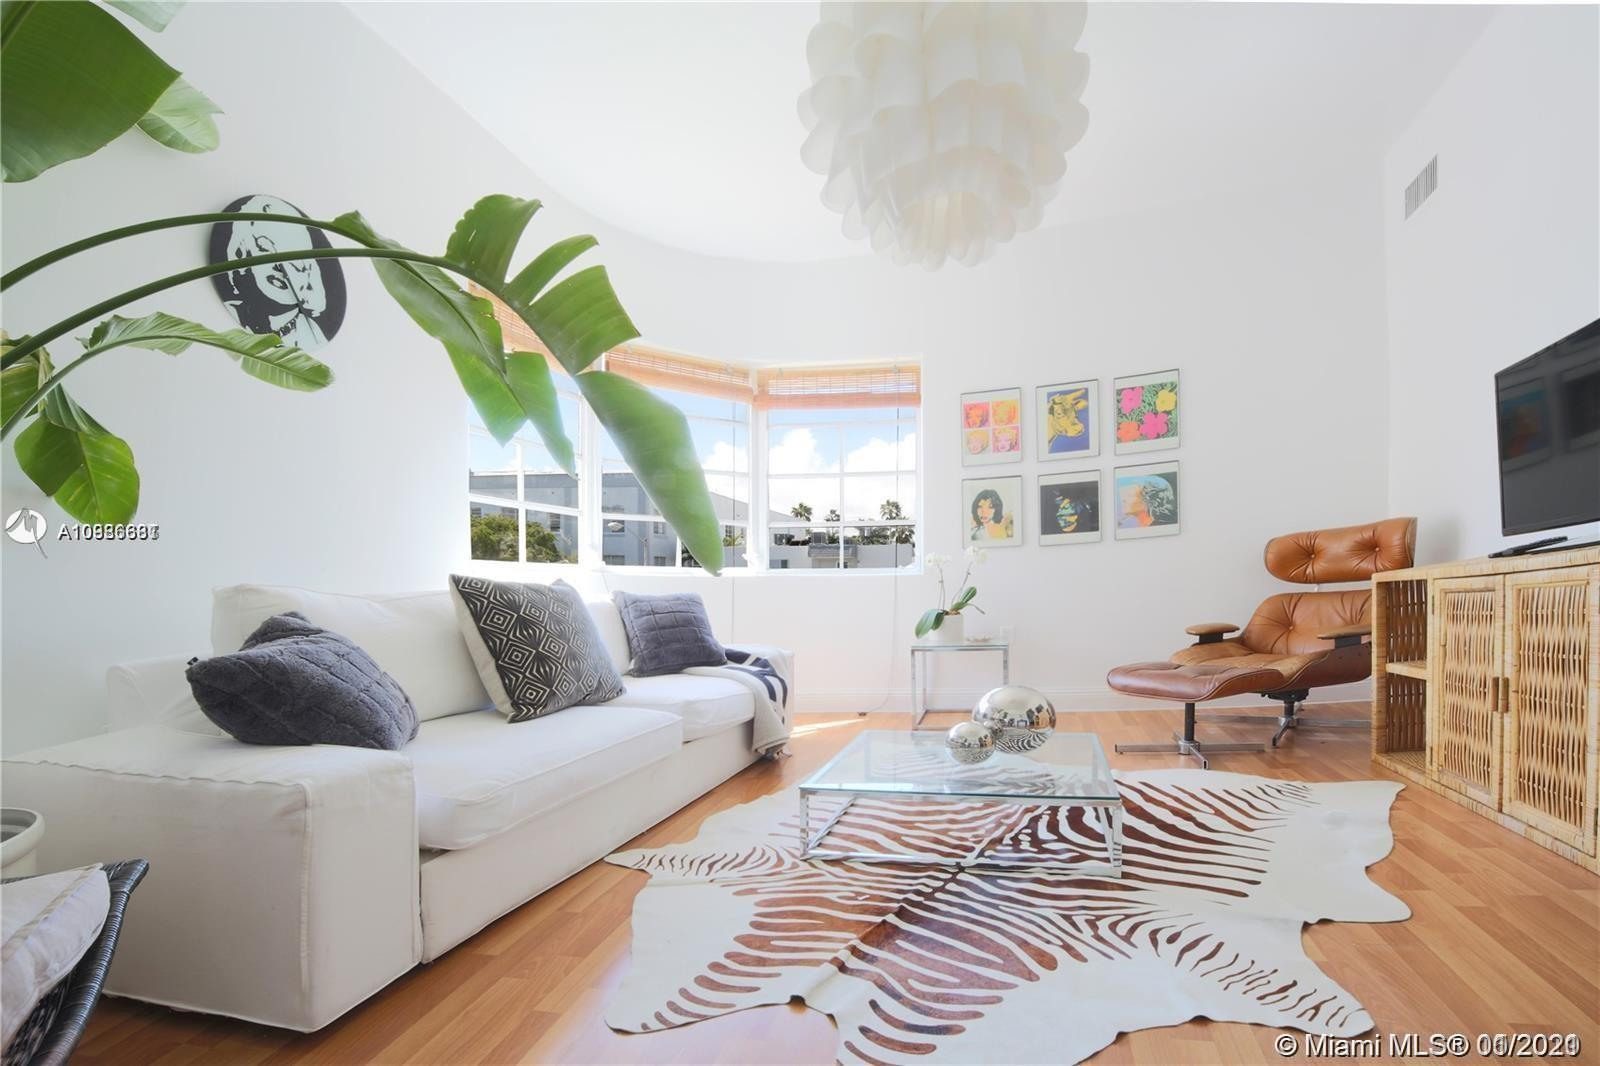 Charming Newly Renovated 2nd Floor Deco Condo Steps to Beach. Large 1 bedroom with lots of light and